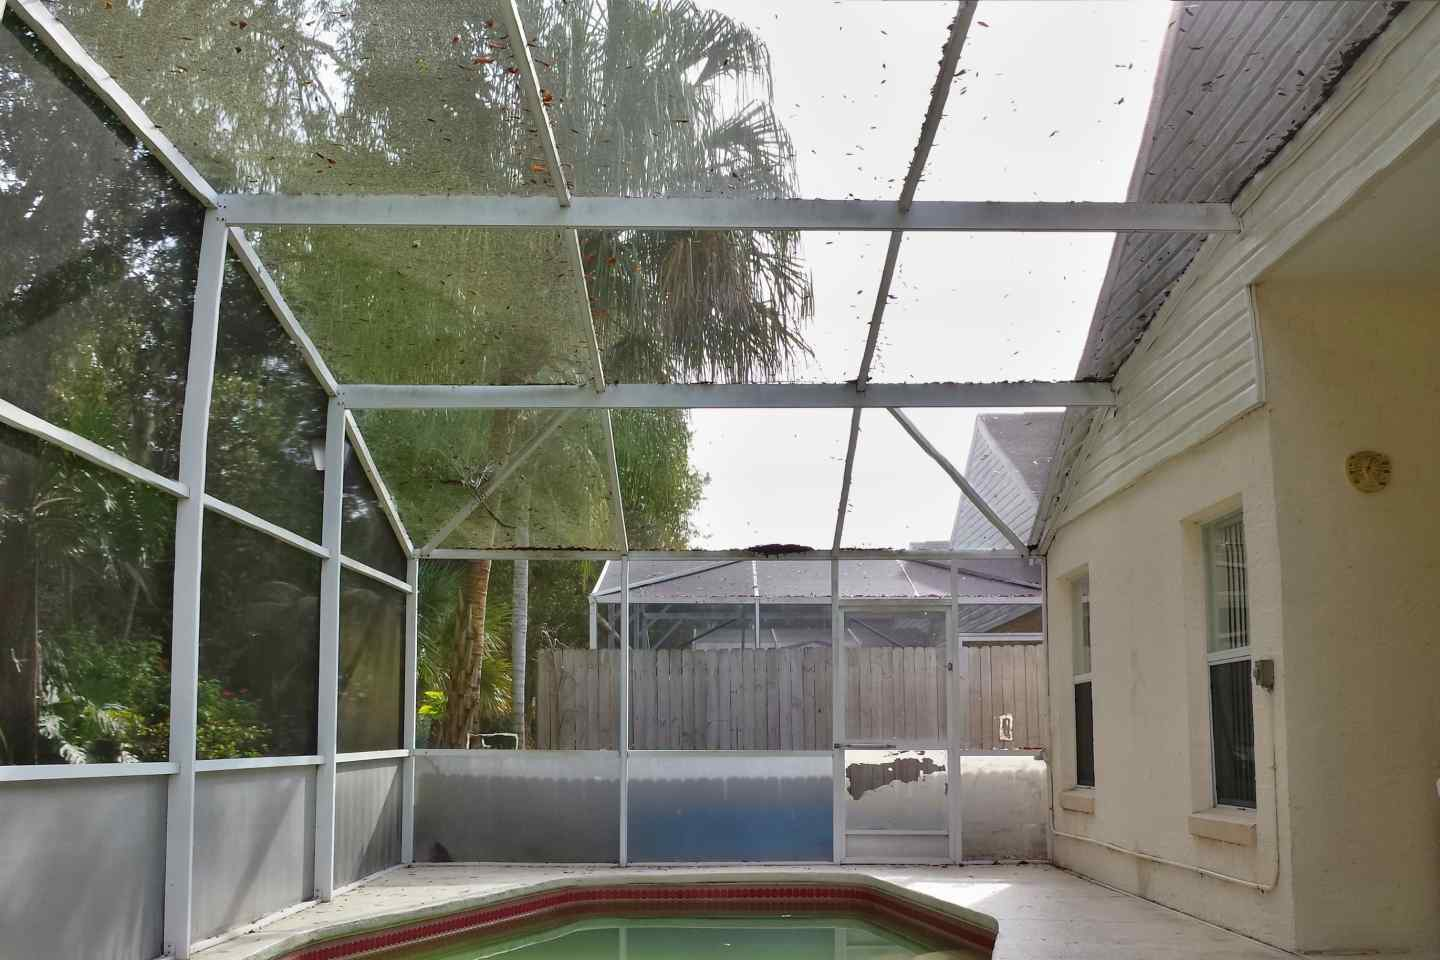 10-pool-enclosure-florida-glass-before-re-screen.jpg